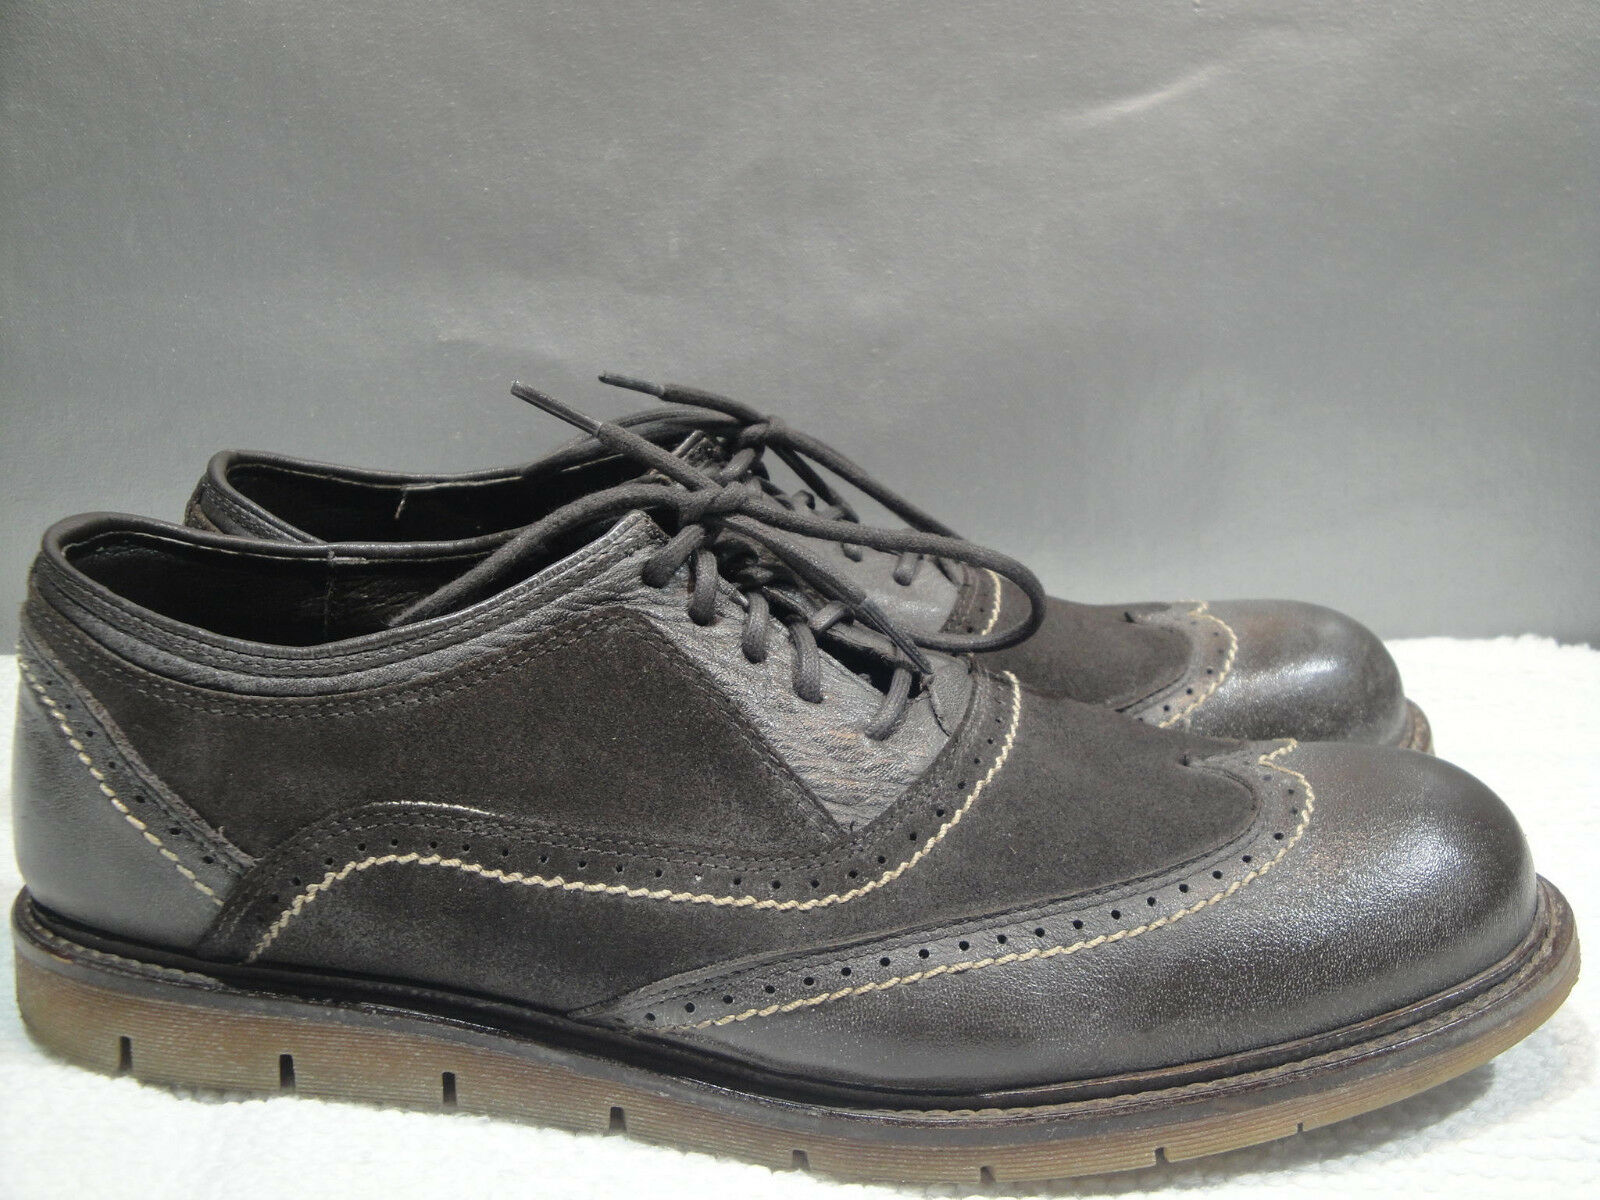 MENS 11.5 BED STU BROWN LEATHER WINGTIP DRESS COMFORT CASUAL OXFORD